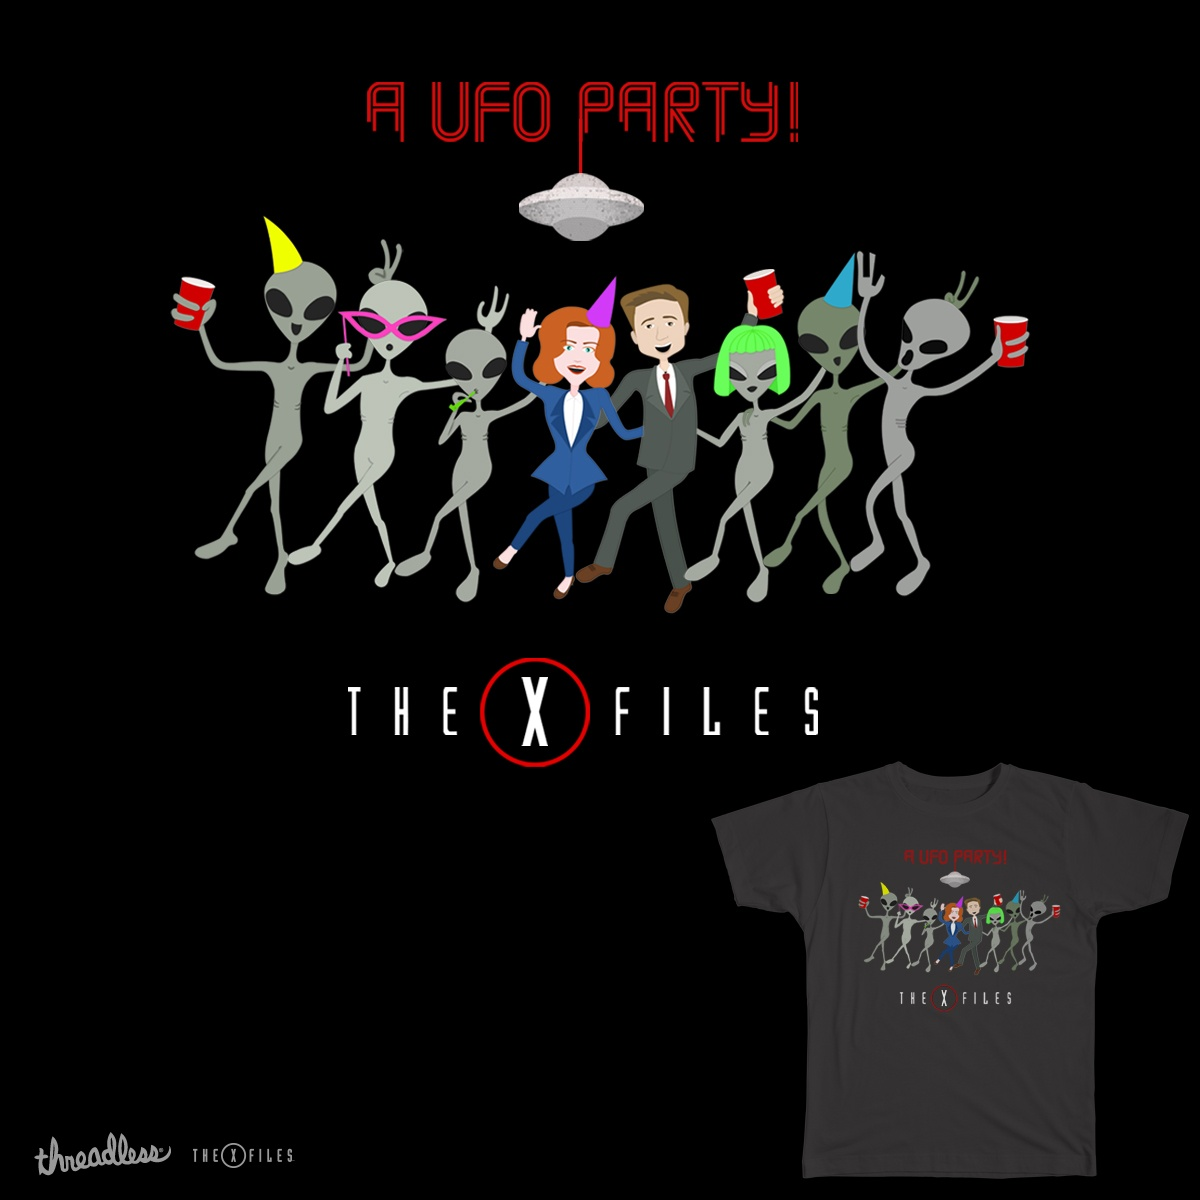 A UFO Party!, a cool t-shirt design